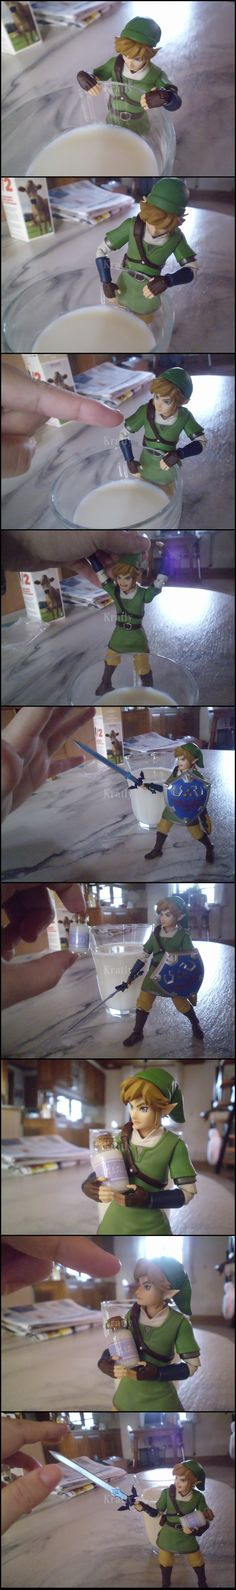 how to get milk in zelda